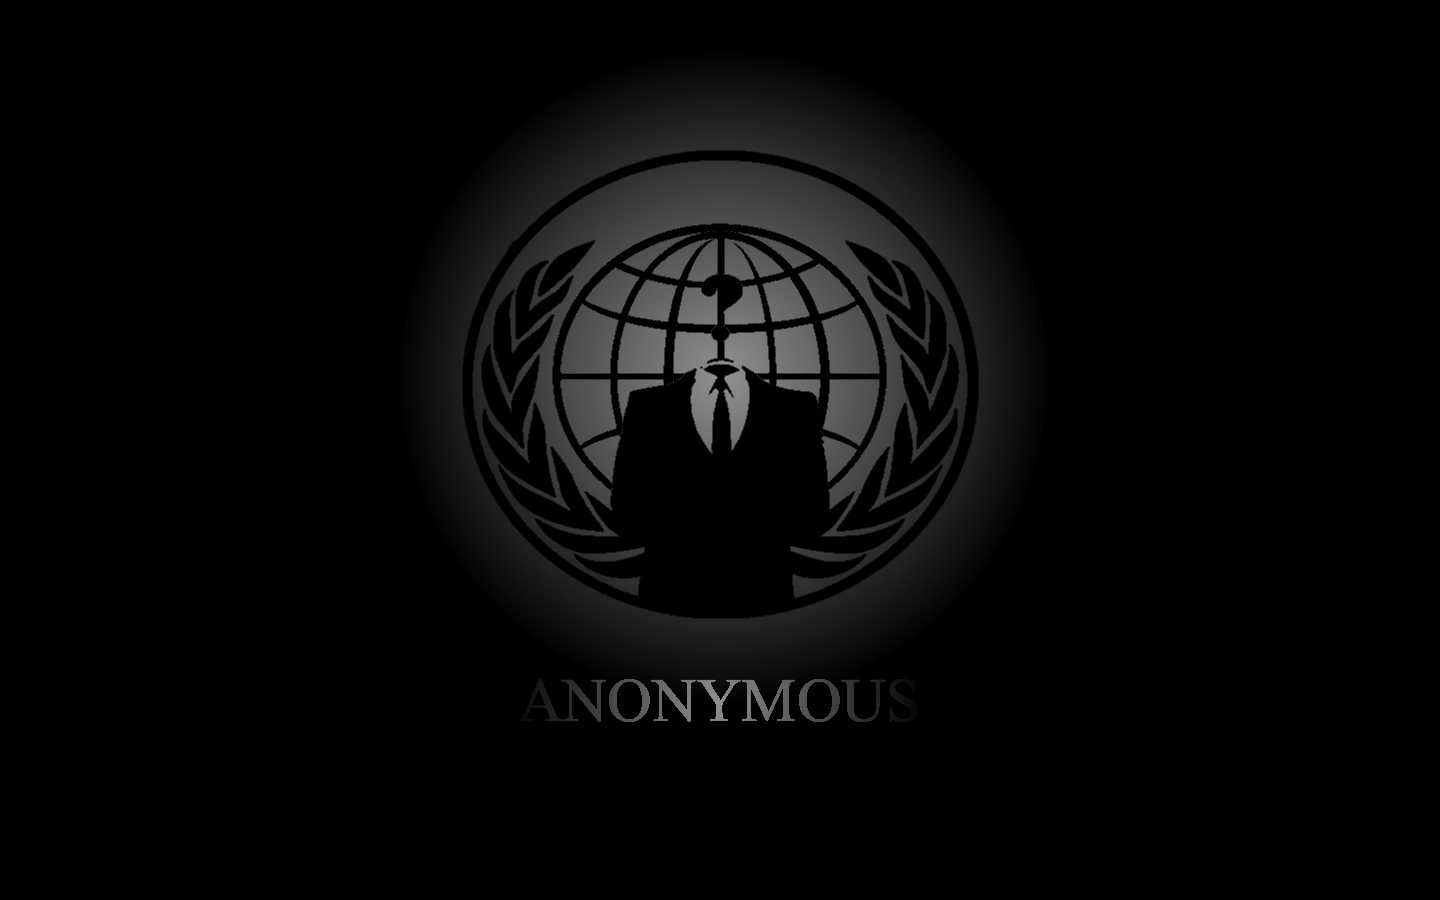 Anonymous Wallpaper 1440x900 Anonymous 1440x900